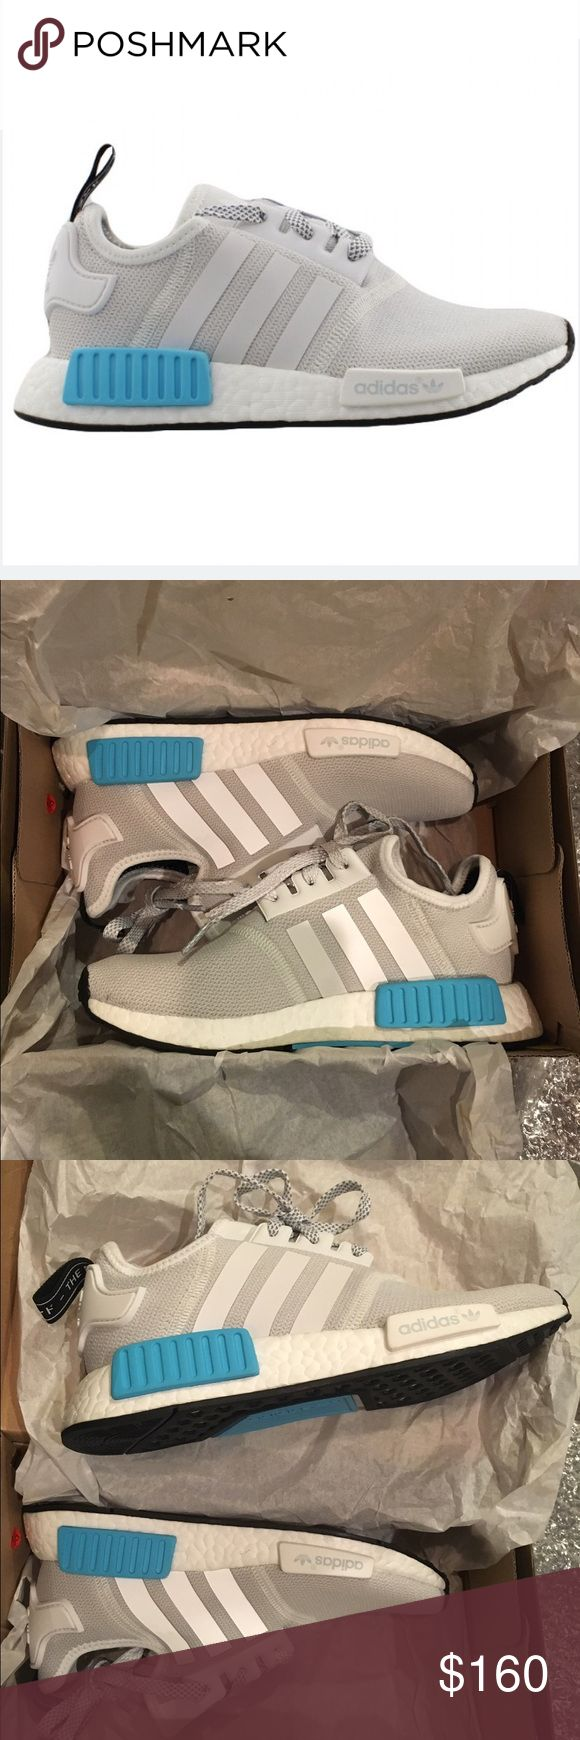 Adidas NMD R1 White/grey. Mismatched white/blue plugs. BNWT. Style: NMD R1 GS (S80207), released 08/18/2016. Neoprene and mesh upper. KIDS SIZE 4 (EU 36, fits women's 6). No trades. Use offer feature to make any offers, serious buyers only, will not respond to comment offers. Adidas Shoes Sneakers